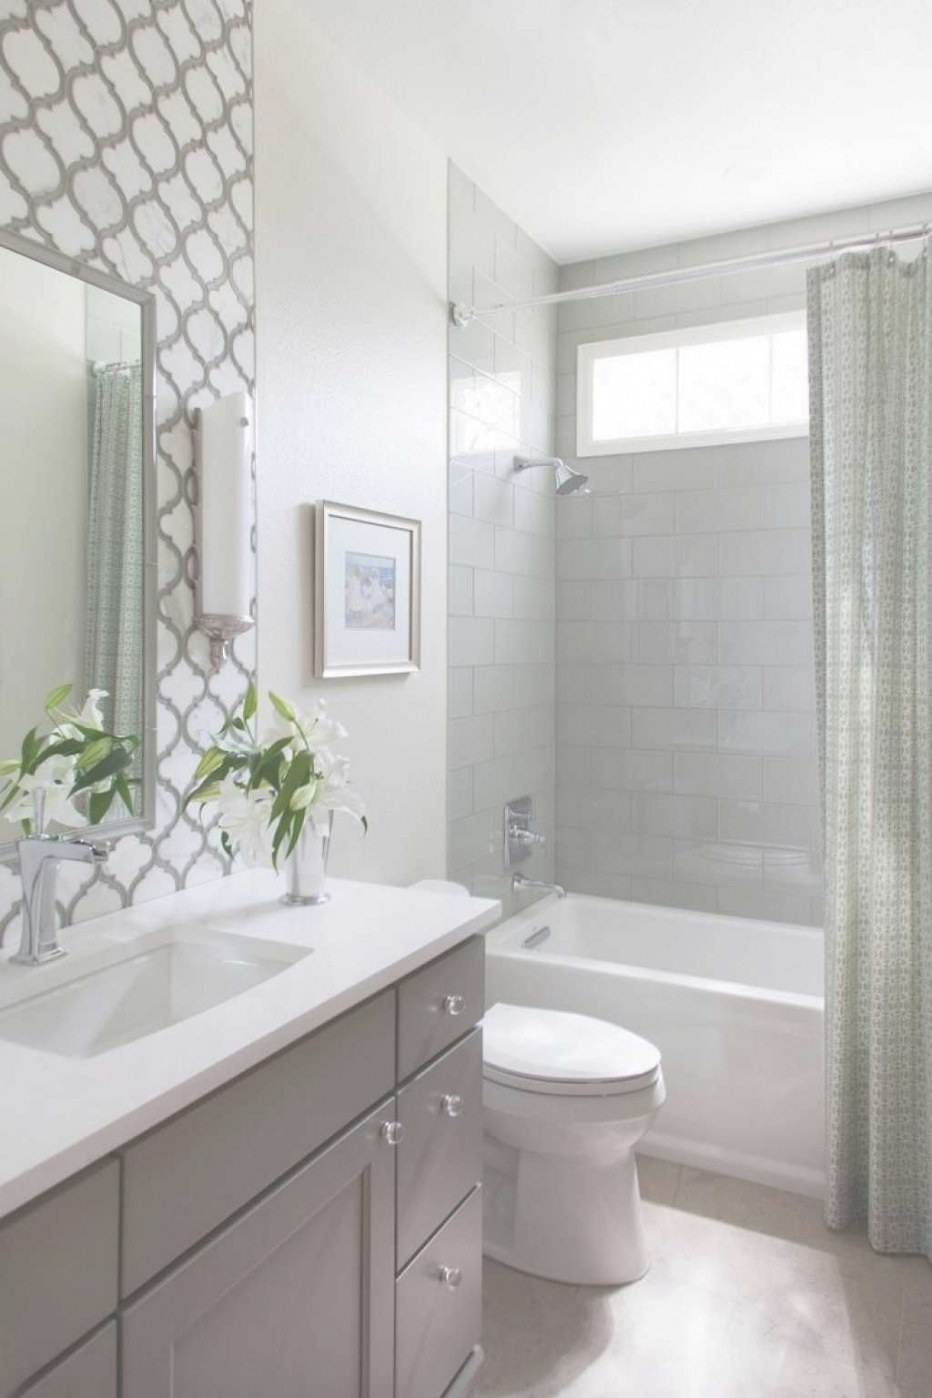 Pinarchitecture Design Magz On Bathroom Design Ideas for ** In Small Bathroom